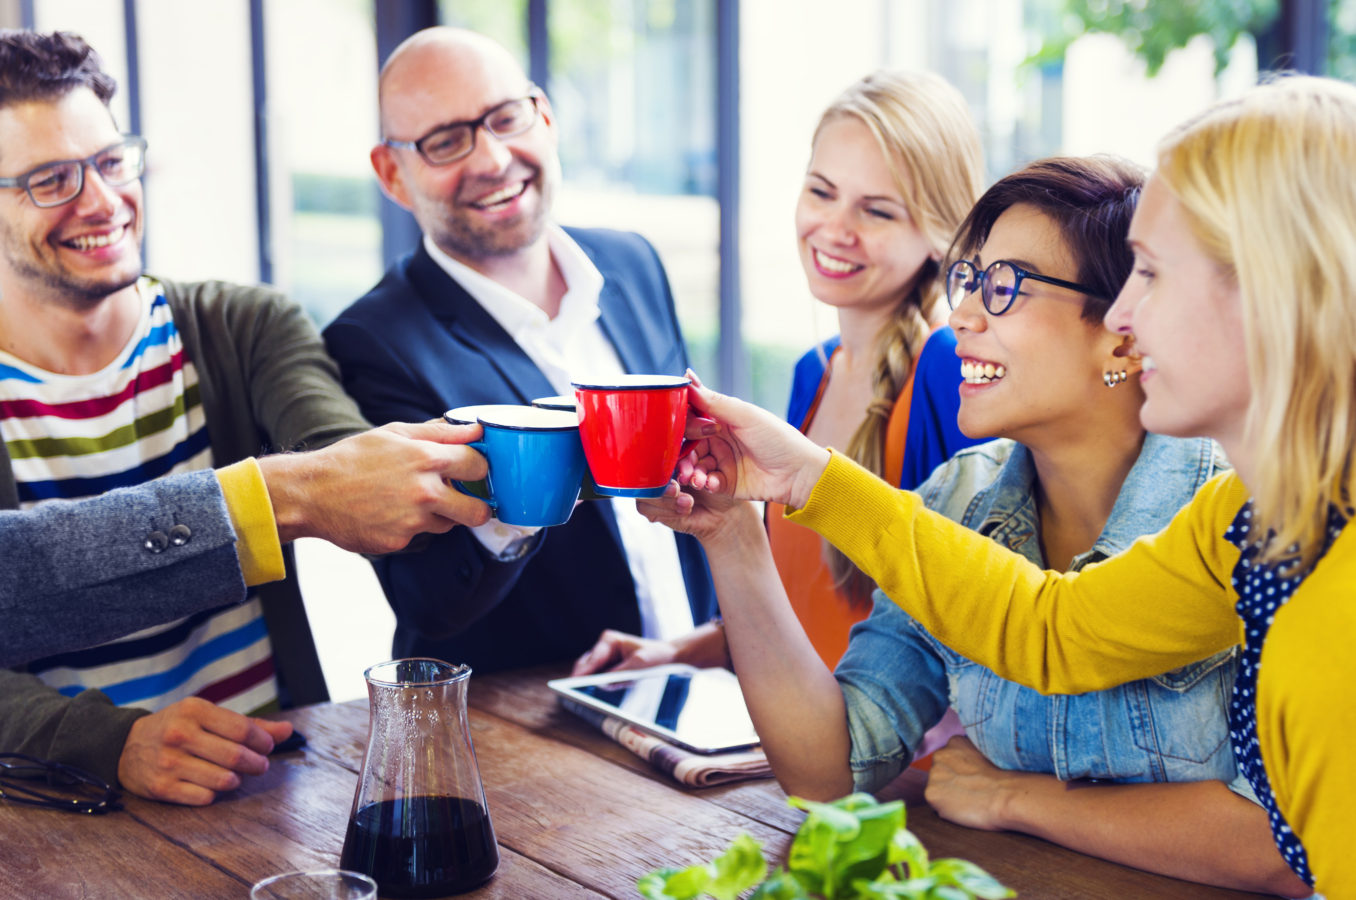 Your Top Tips for Building a Positive Team